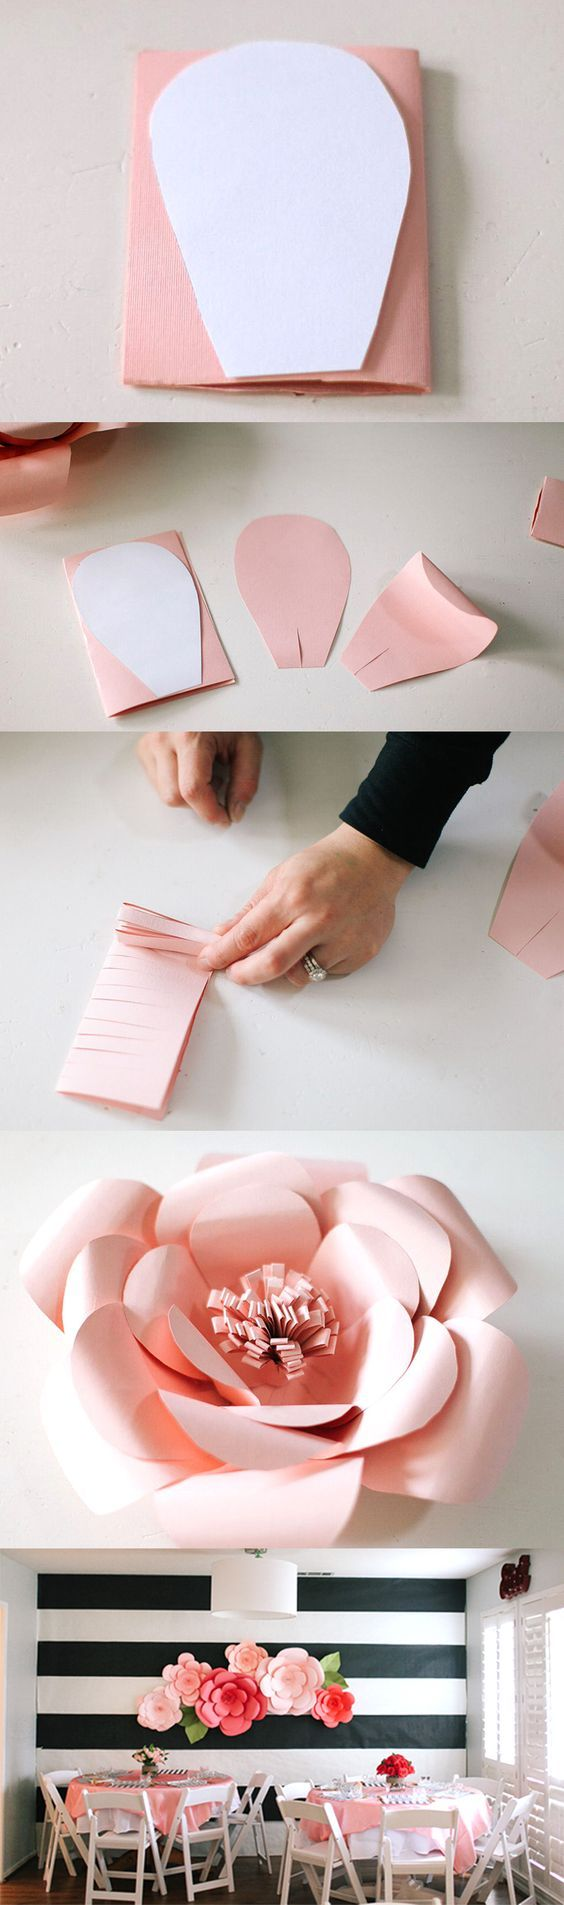 How To Make Flower From Crepe Paper Video Flowers Healthy